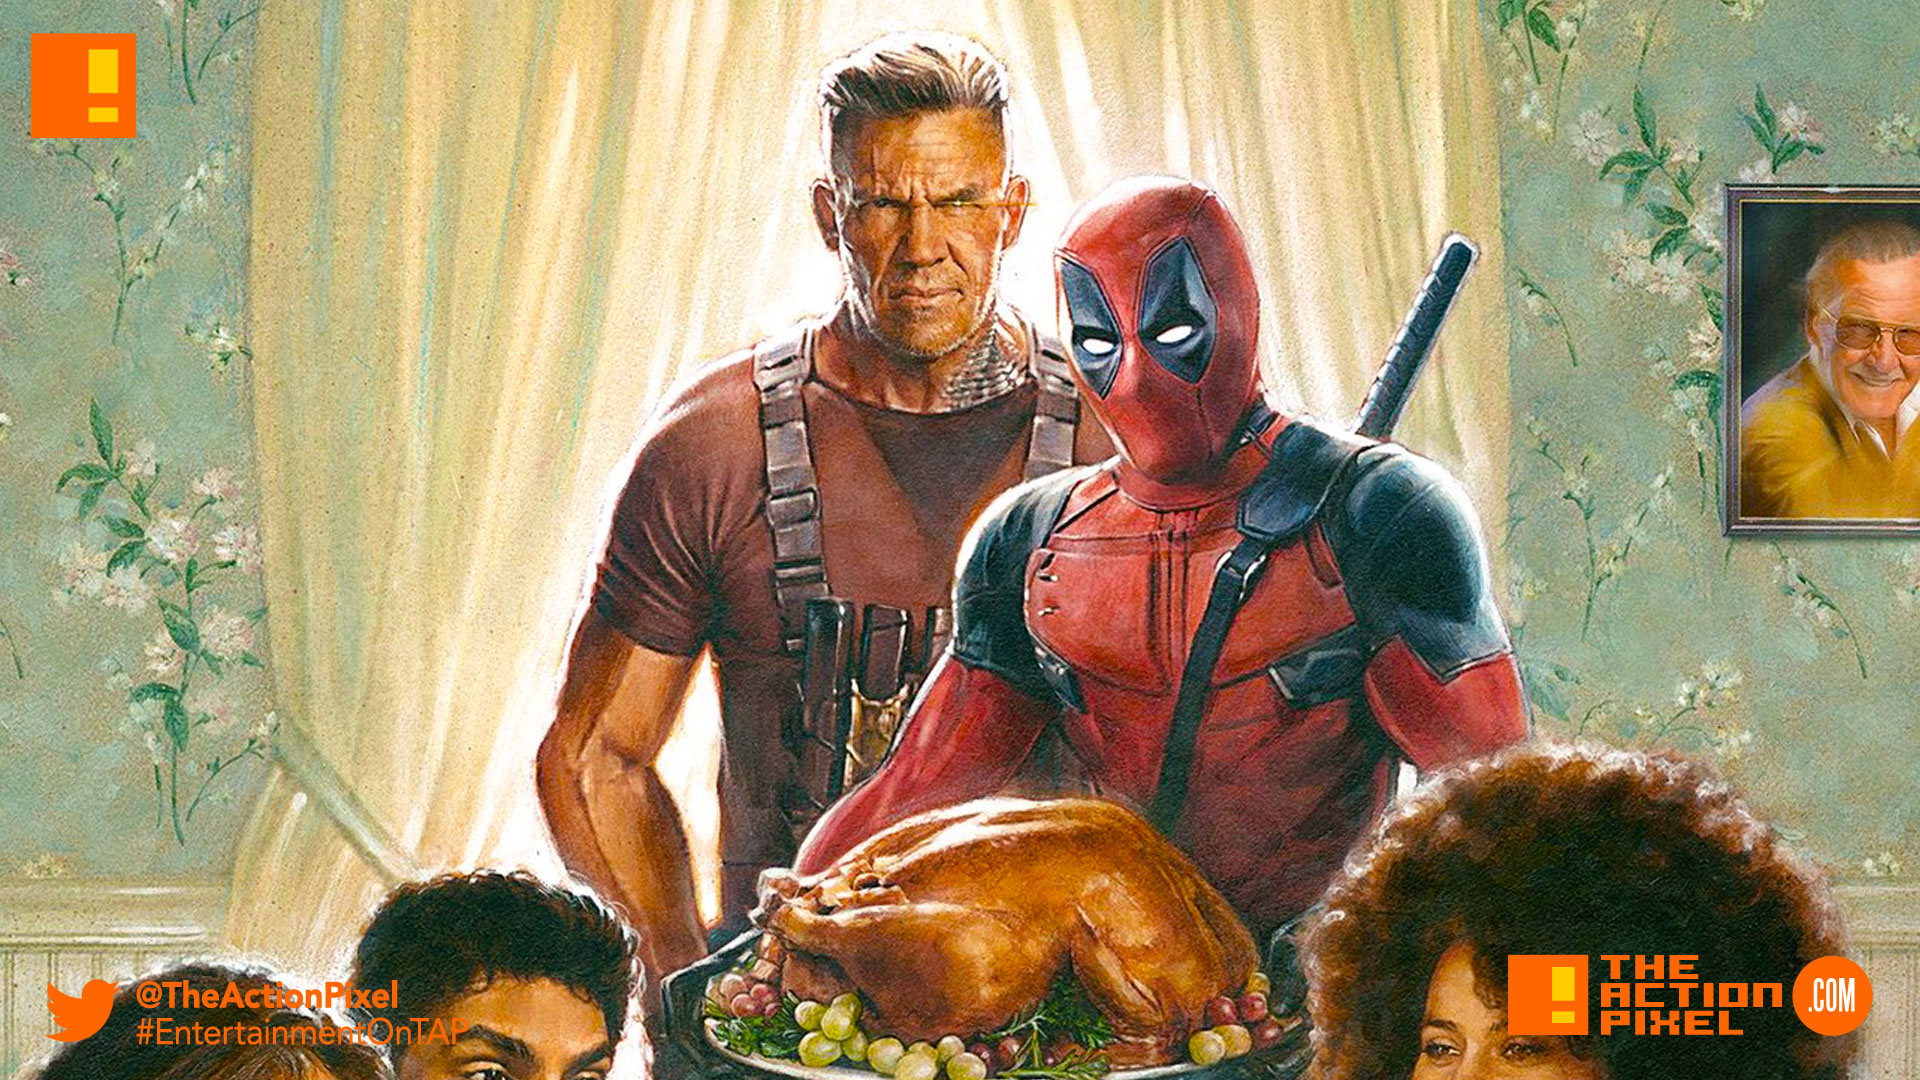 deadpool, deadpool 2,deadpool 2, entertainment on tap,deadpool, deadpool 2, marvel, 20th century fox, the action pixel, entertainment on tap,poster